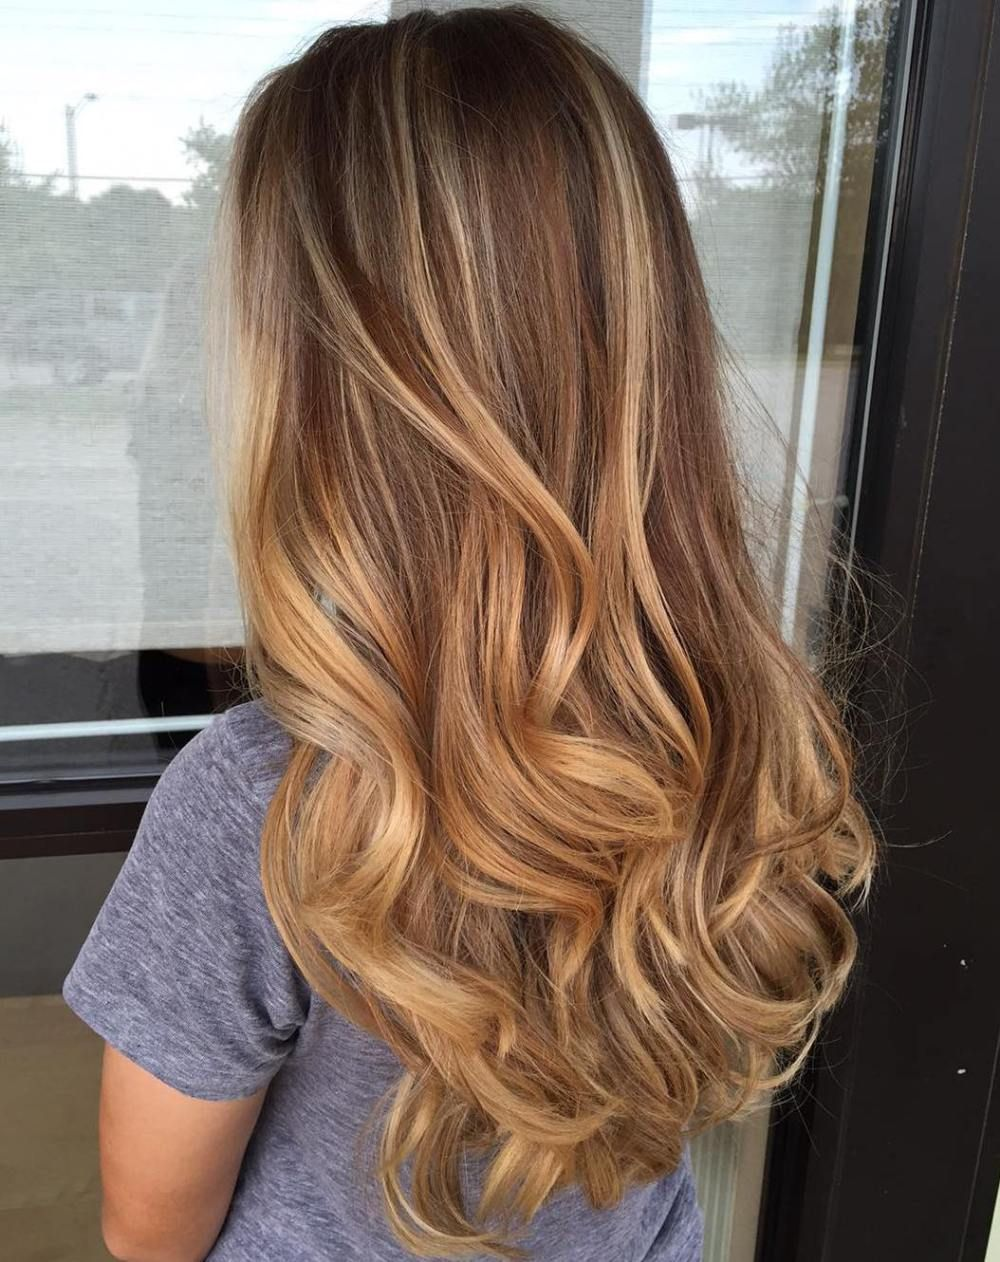 20 sweet caramel balayage hairstyles for brunettes and beyond hair styles pinterest. Black Bedroom Furniture Sets. Home Design Ideas